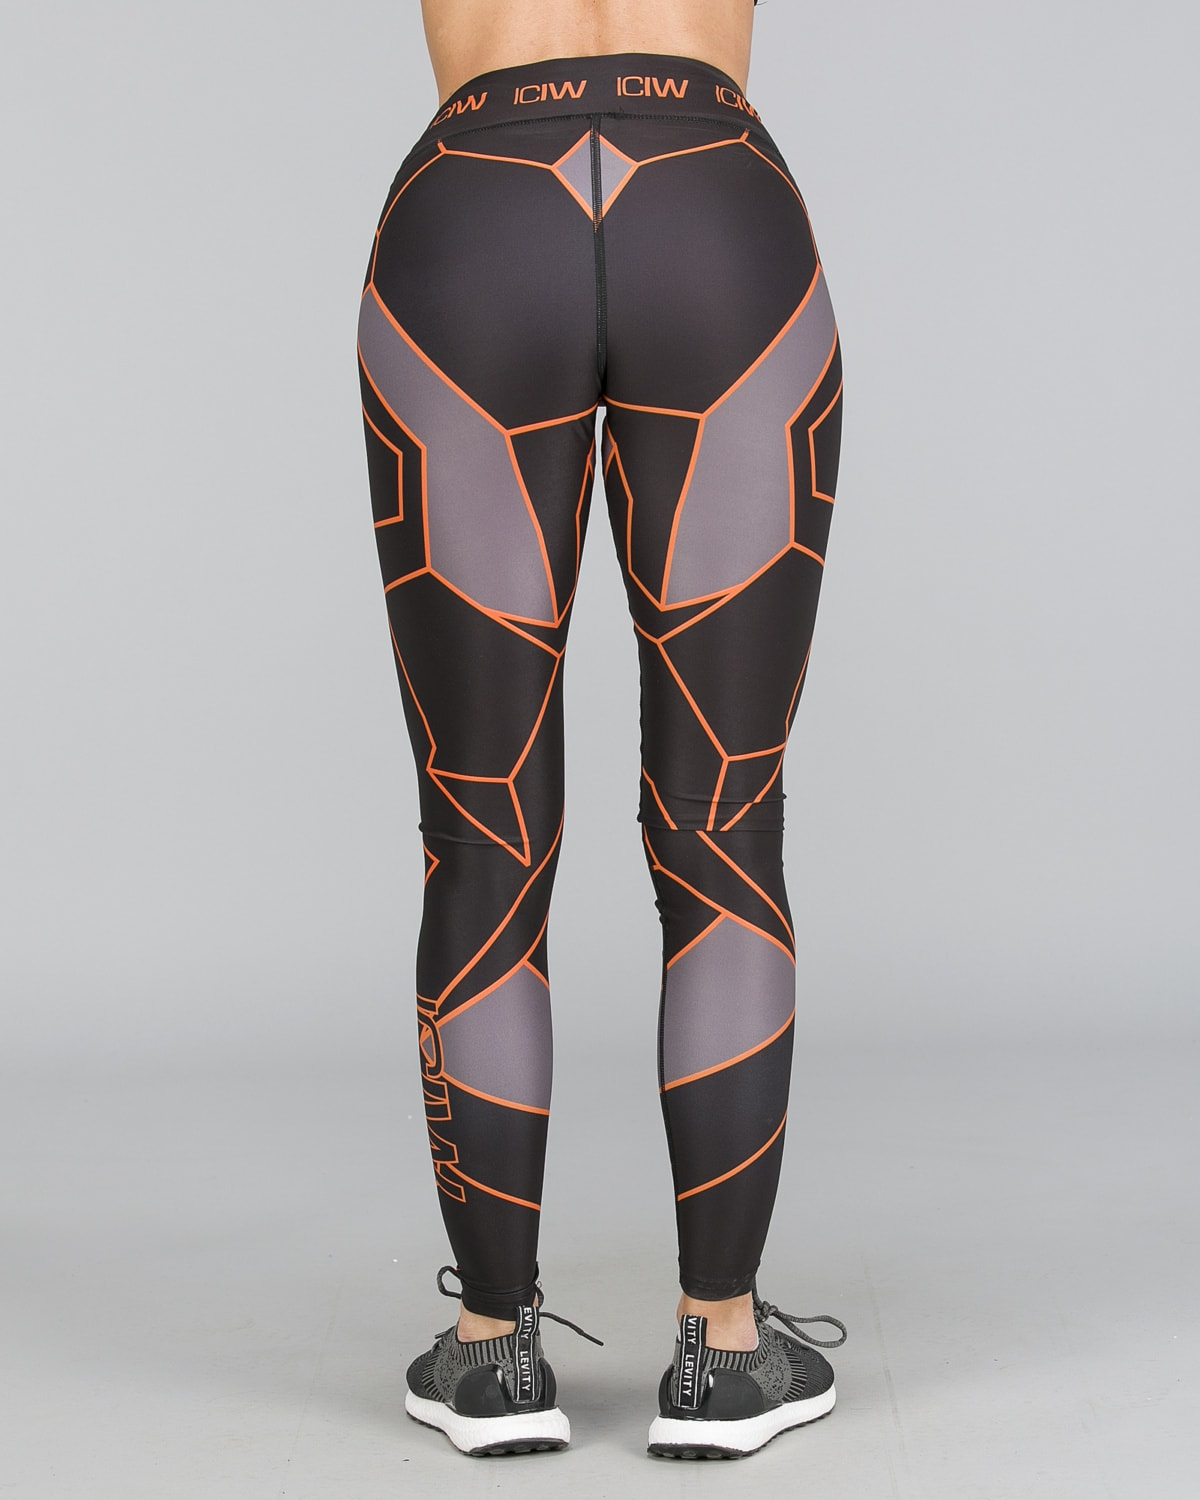 ICANIWILL – Orange Camo Tights e